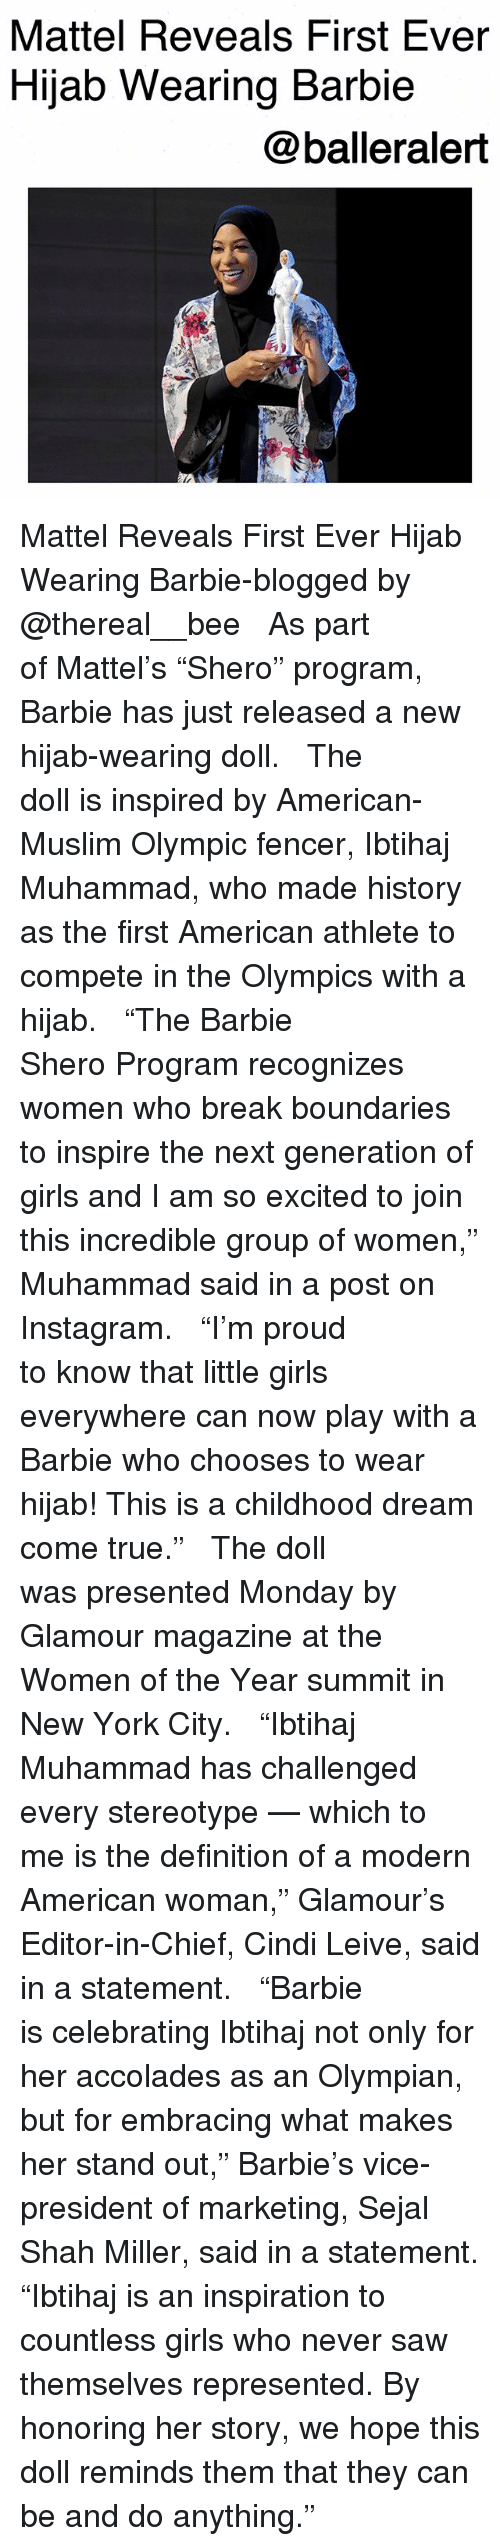 """accolades: Mattel Reveals First Ever  Hijab Wearing Barbie  @balleralert Mattel Reveals First Ever Hijab Wearing Barbie-blogged by @thereal__bee ⠀⠀⠀⠀⠀⠀⠀⠀⠀ ⠀⠀ As part of Mattel's """"Shero"""" program, Barbie has just released a new hijab-wearing doll. ⠀⠀⠀⠀⠀⠀⠀⠀⠀ ⠀⠀ The doll is inspired by American-Muslim Olympic fencer, Ibtihaj Muhammad, who made history as the first American athlete to compete in the Olympics with a hijab. ⠀⠀⠀⠀⠀⠀⠀⠀⠀ ⠀⠀ """"The Barbie Shero Program recognizes women who break boundaries to inspire the next generation of girls and I am so excited to join this incredible group of women,"""" Muhammad said in a post on Instagram. ⠀⠀⠀⠀⠀⠀⠀⠀⠀ ⠀⠀ """"I'm proud to know that little girls everywhere can now play with a Barbie who chooses to wear hijab! This is a childhood dream come true."""" ⠀⠀⠀⠀⠀⠀⠀⠀⠀ ⠀⠀ The doll was presented Monday by Glamour magazine at the Women of the Year summit in New York City. ⠀⠀⠀⠀⠀⠀⠀⠀⠀ ⠀⠀ """"Ibtihaj Muhammad has challenged every stereotype — which to me is the definition of a modern American woman,"""" Glamour's Editor-in-Chief, Cindi Leive, said in a statement. ⠀⠀⠀⠀⠀⠀⠀⠀⠀ ⠀⠀ """"Barbie is celebrating Ibtihaj not only for her accolades as an Olympian, but for embracing what makes her stand out,"""" Barbie's vice-president of marketing, Sejal Shah Miller, said in a statement. """"Ibtihaj is an inspiration to countless girls who never saw themselves represented. By honoring her story, we hope this doll reminds them that they can be and do anything."""""""